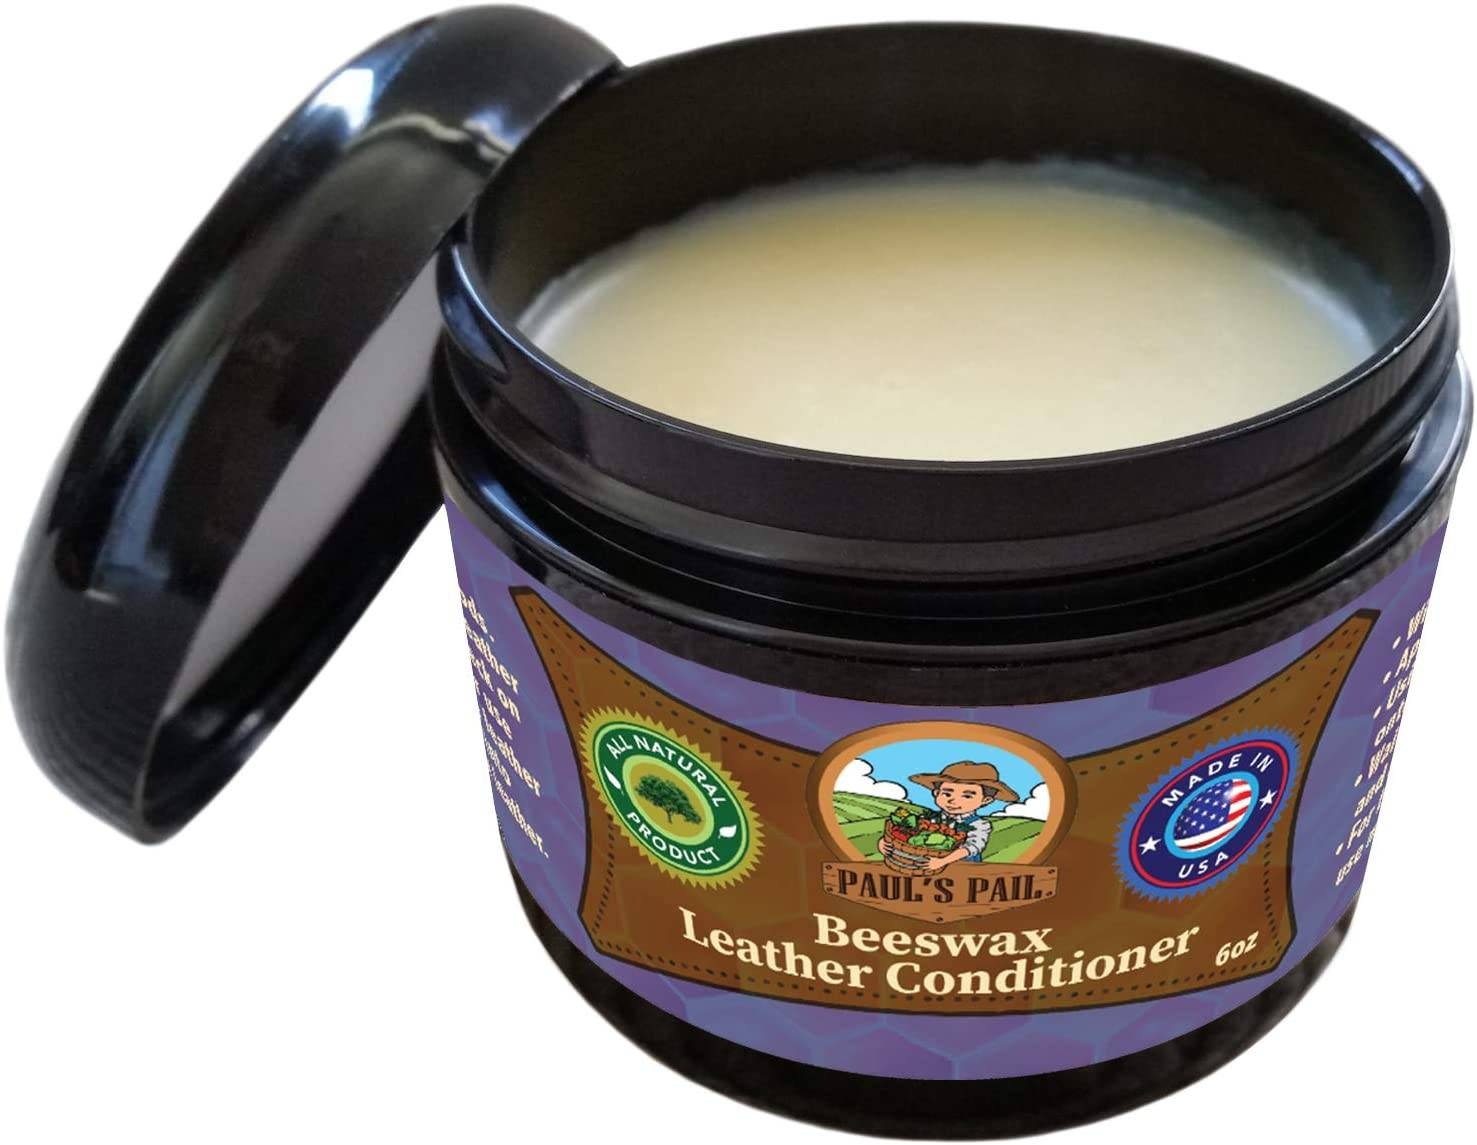 Paul's Pail All Natural Beeswax Leather Conditioner